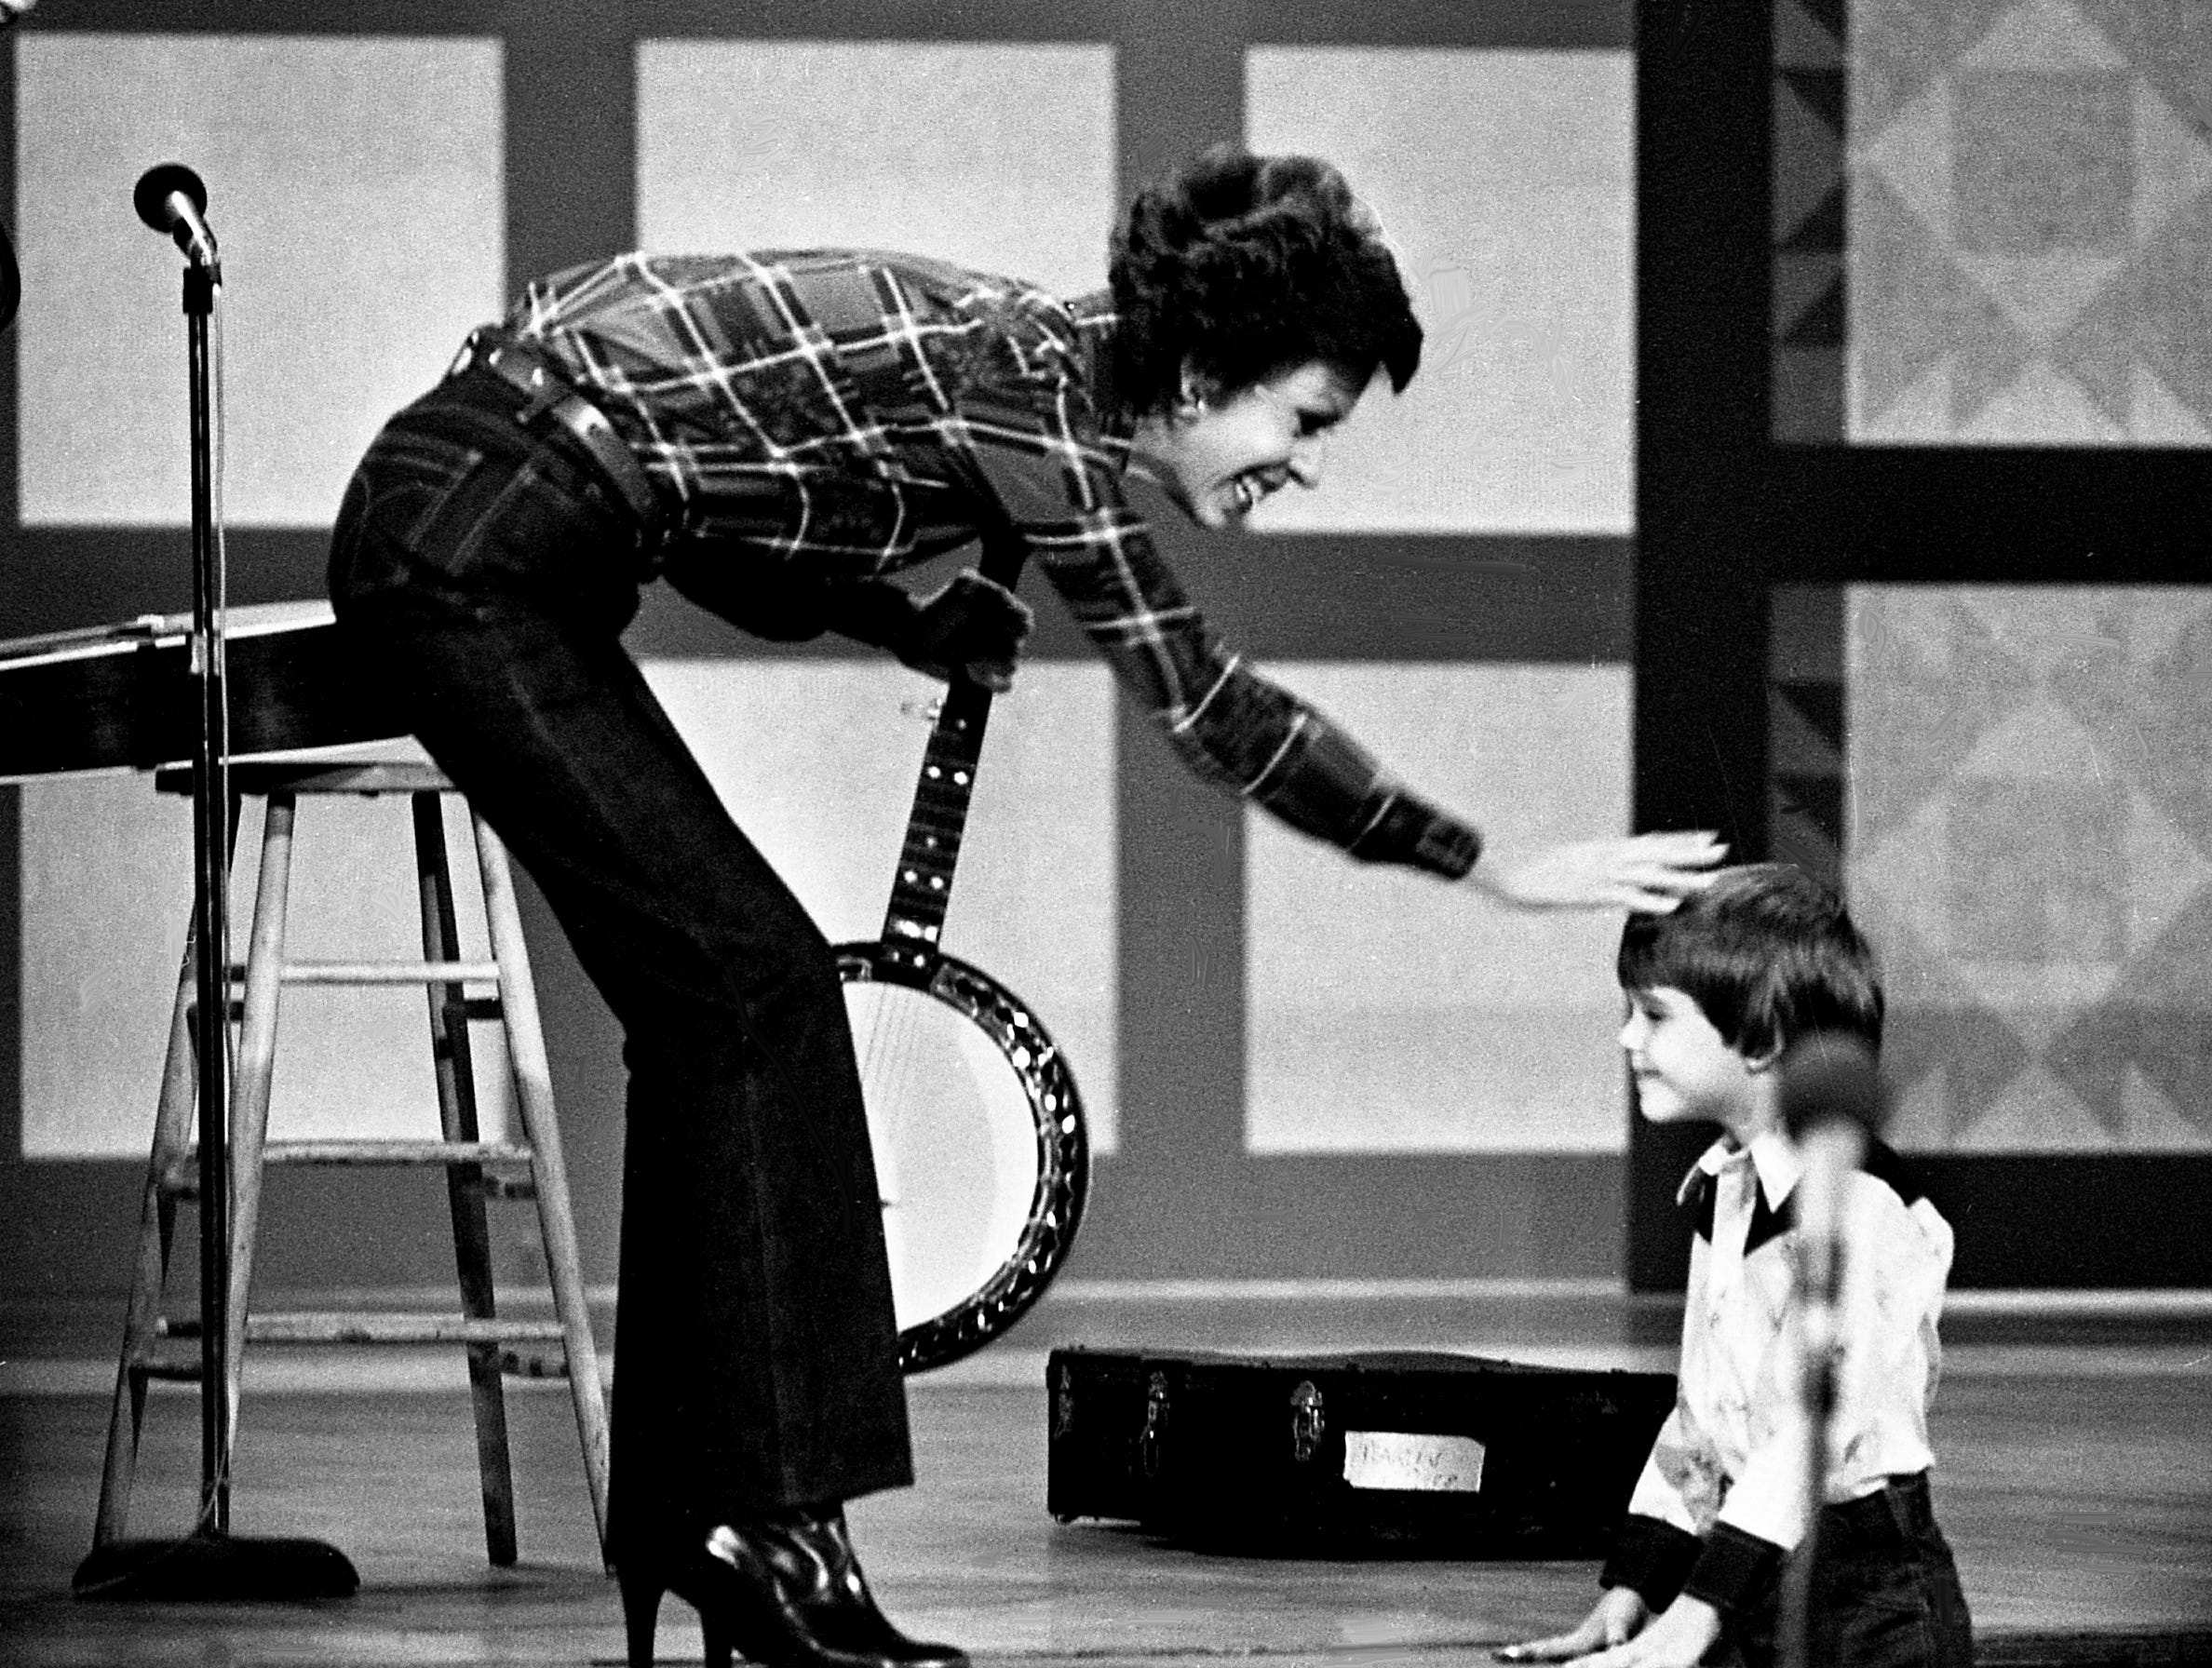 """Six-year-old banjo wizard Lewis Phillips, right, offers to teach Carol Burnett to play the banjo during the """"No one picks like a Nashville picker"""" skit during the taping of the """"Dolly and Carol in Nashville"""" television special before a packed audience at the Grand Ole Opry House Jan. 10, 1979."""